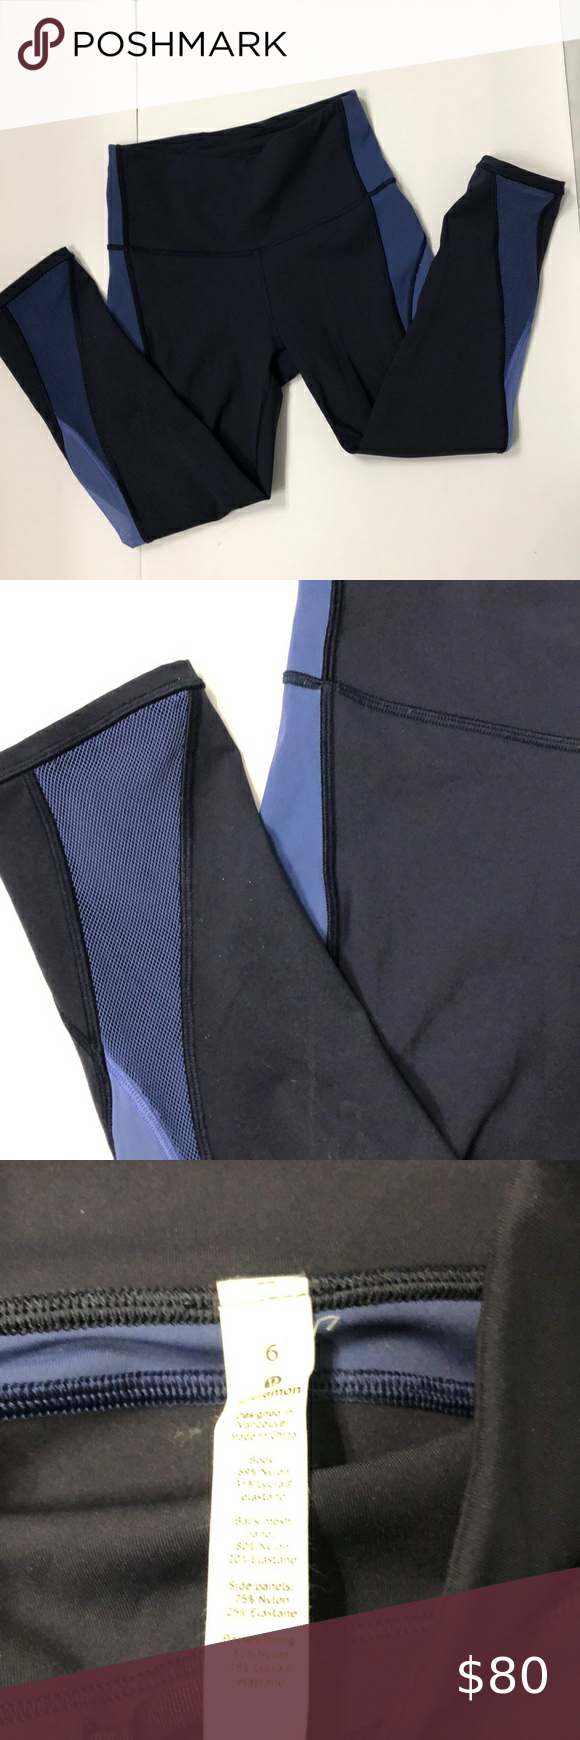 Lululemon blue and black leggings Check out this l